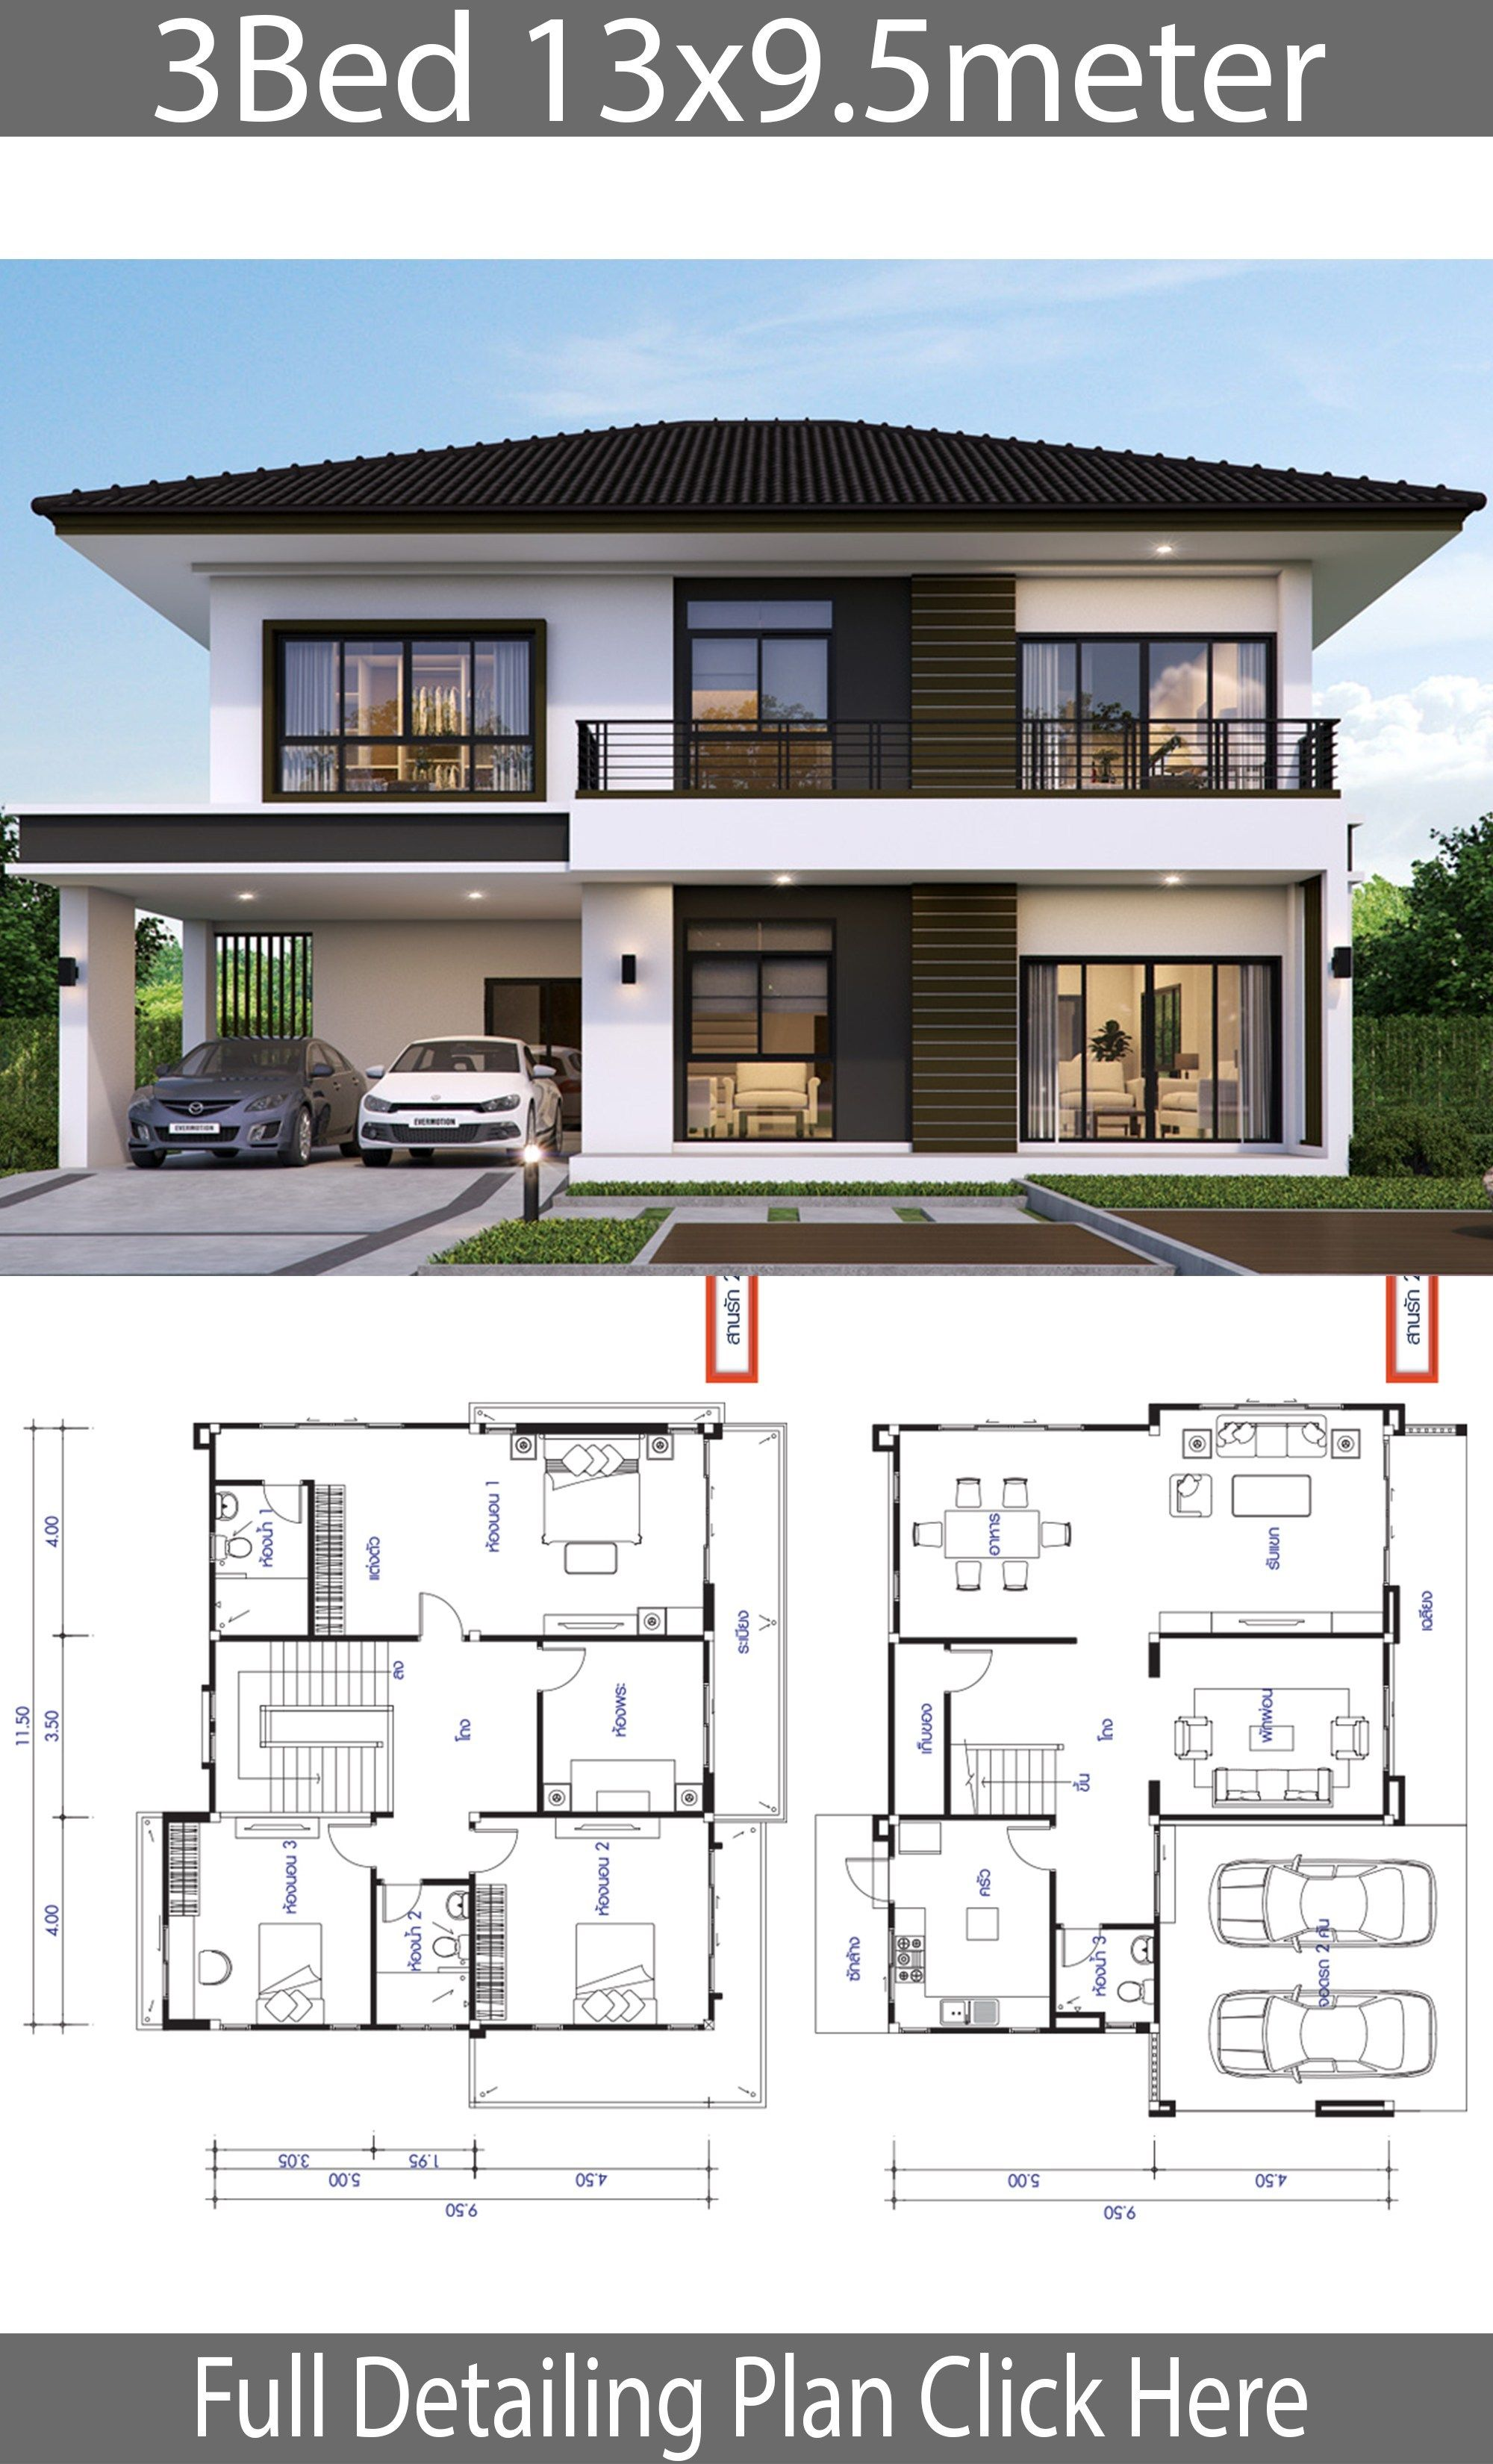 House Design Plan 13x9 5m With 3 Bedrooms Home Design With Plan Architectural House Plans House Designs Exterior Modern House Plans